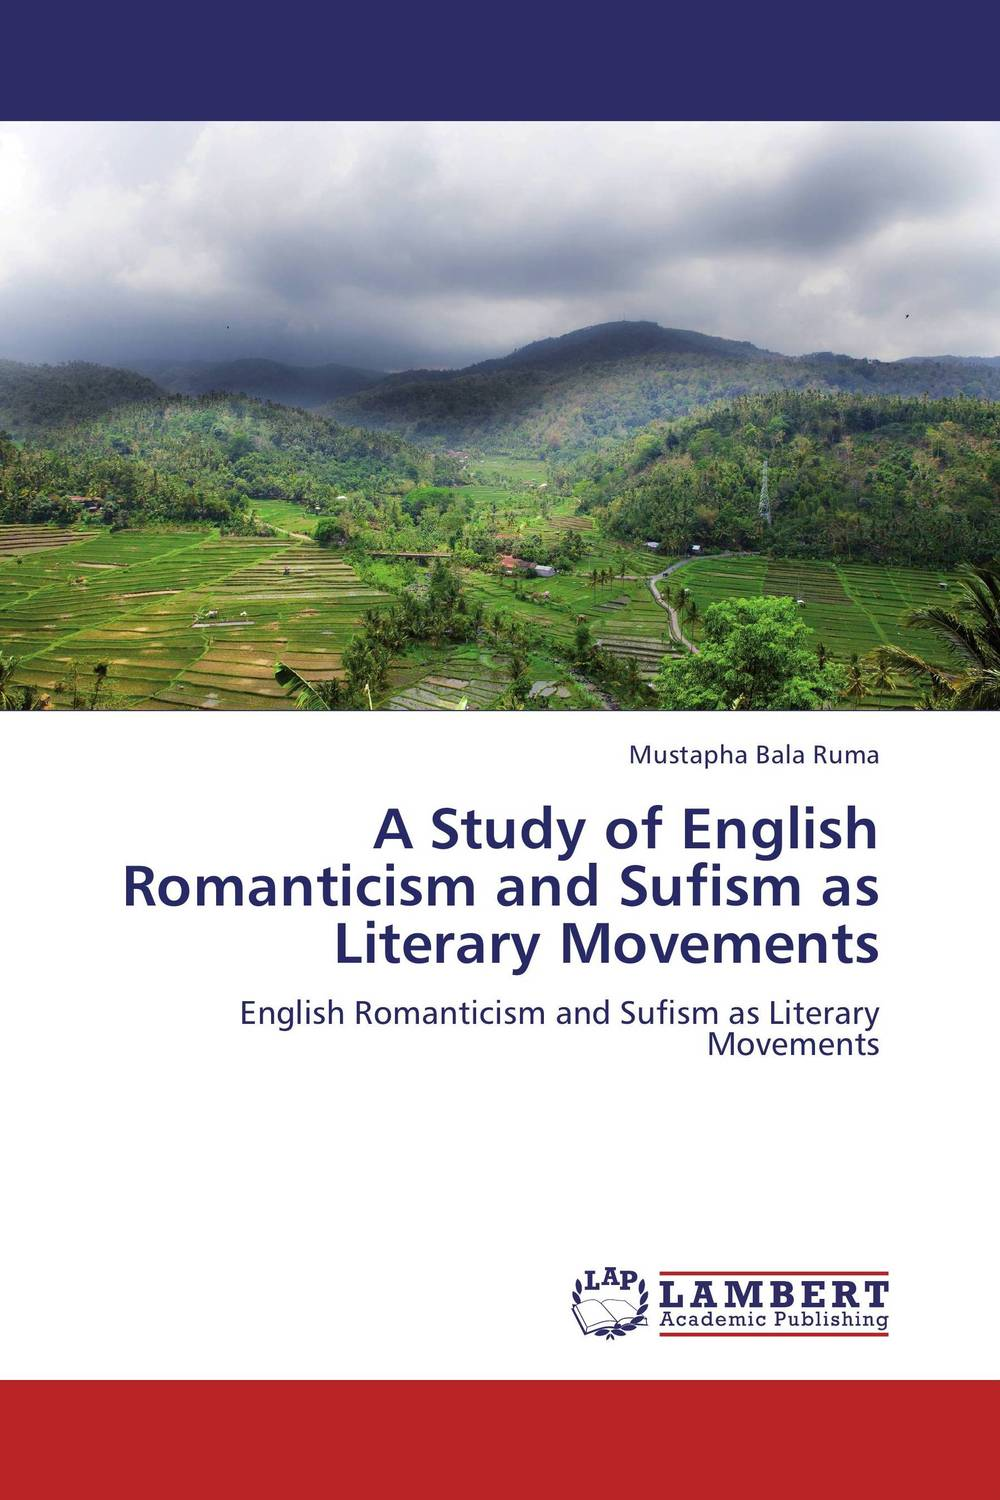 A Study of English Romanticism and Sufism as Literary Movements a study of english